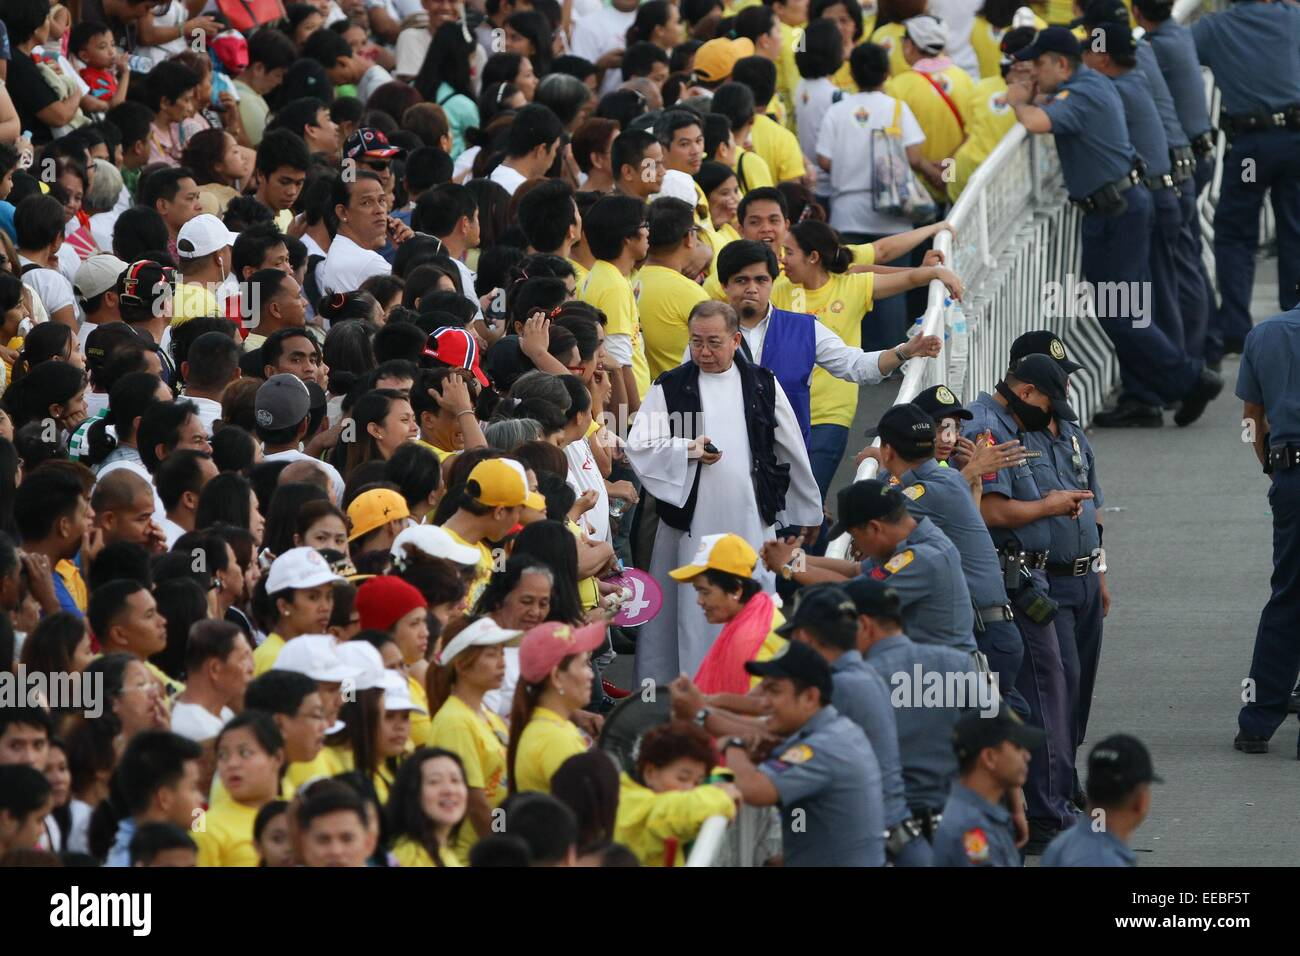 Manila, Phillipines. 15th January, 2015. A priest talks the people waiting for the arrival of Pope Francis in Baclaran - Stock Image